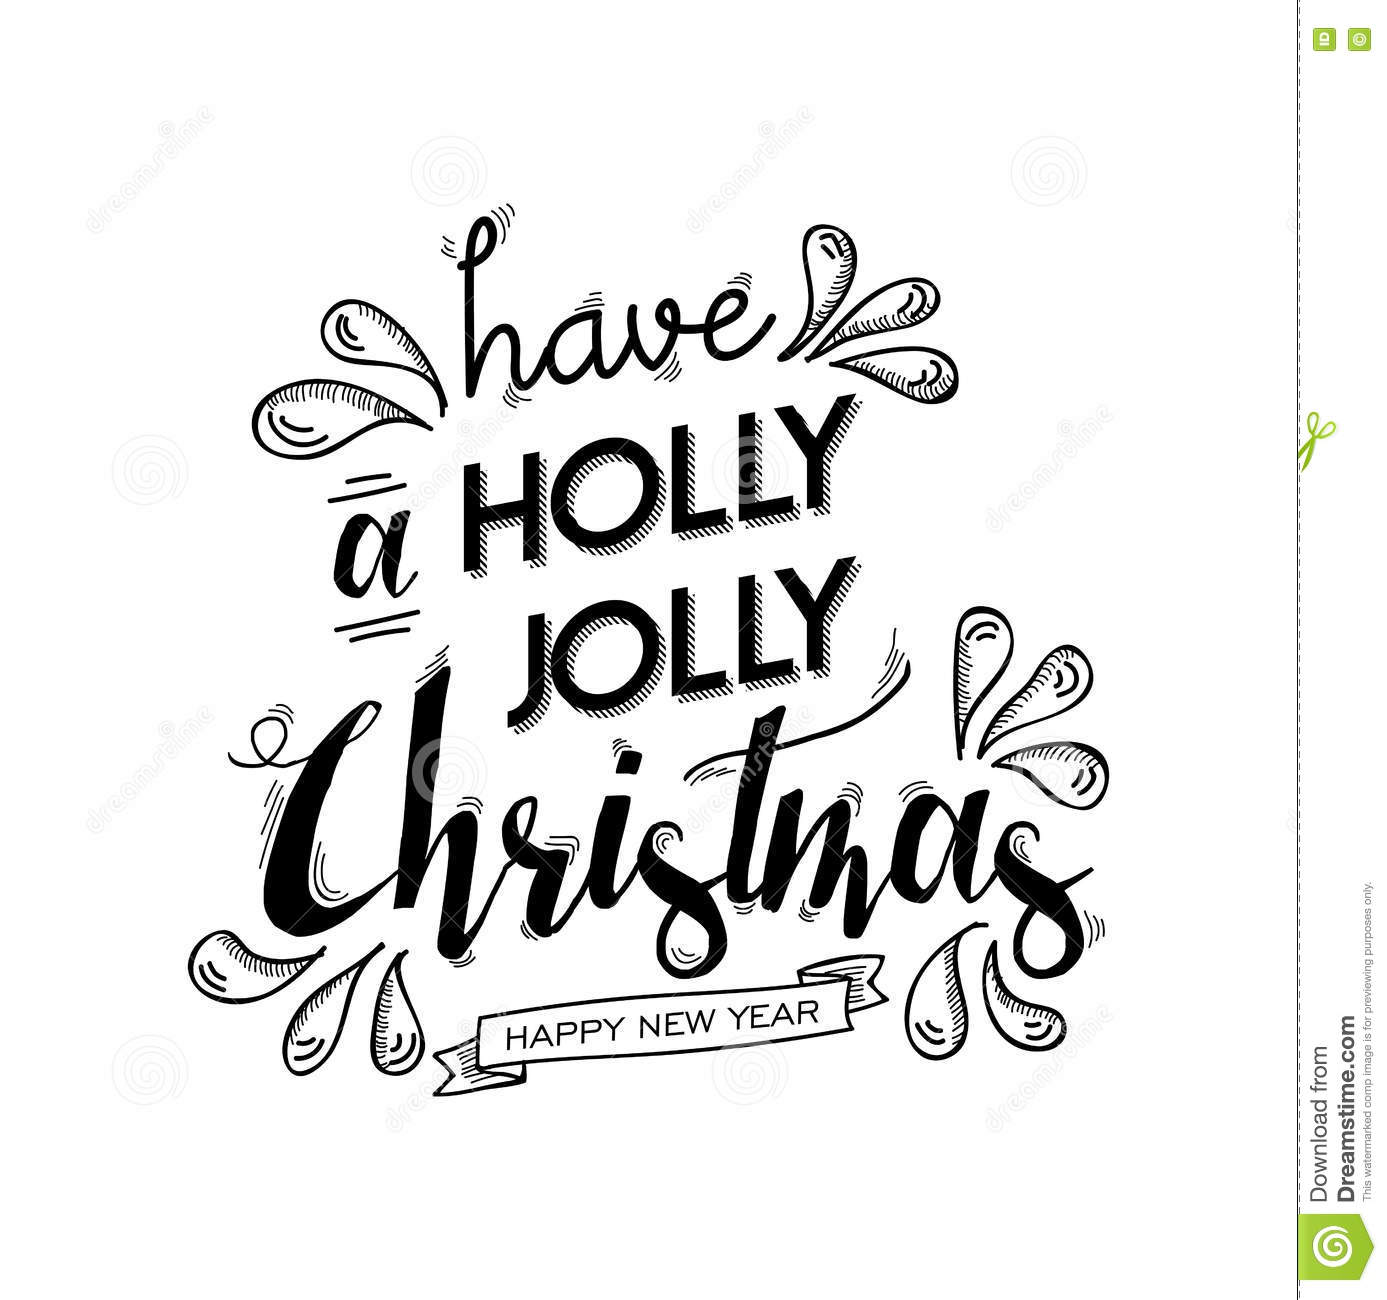 Merry Christmas And Happy New Year Lettering Art Stock Vector ...